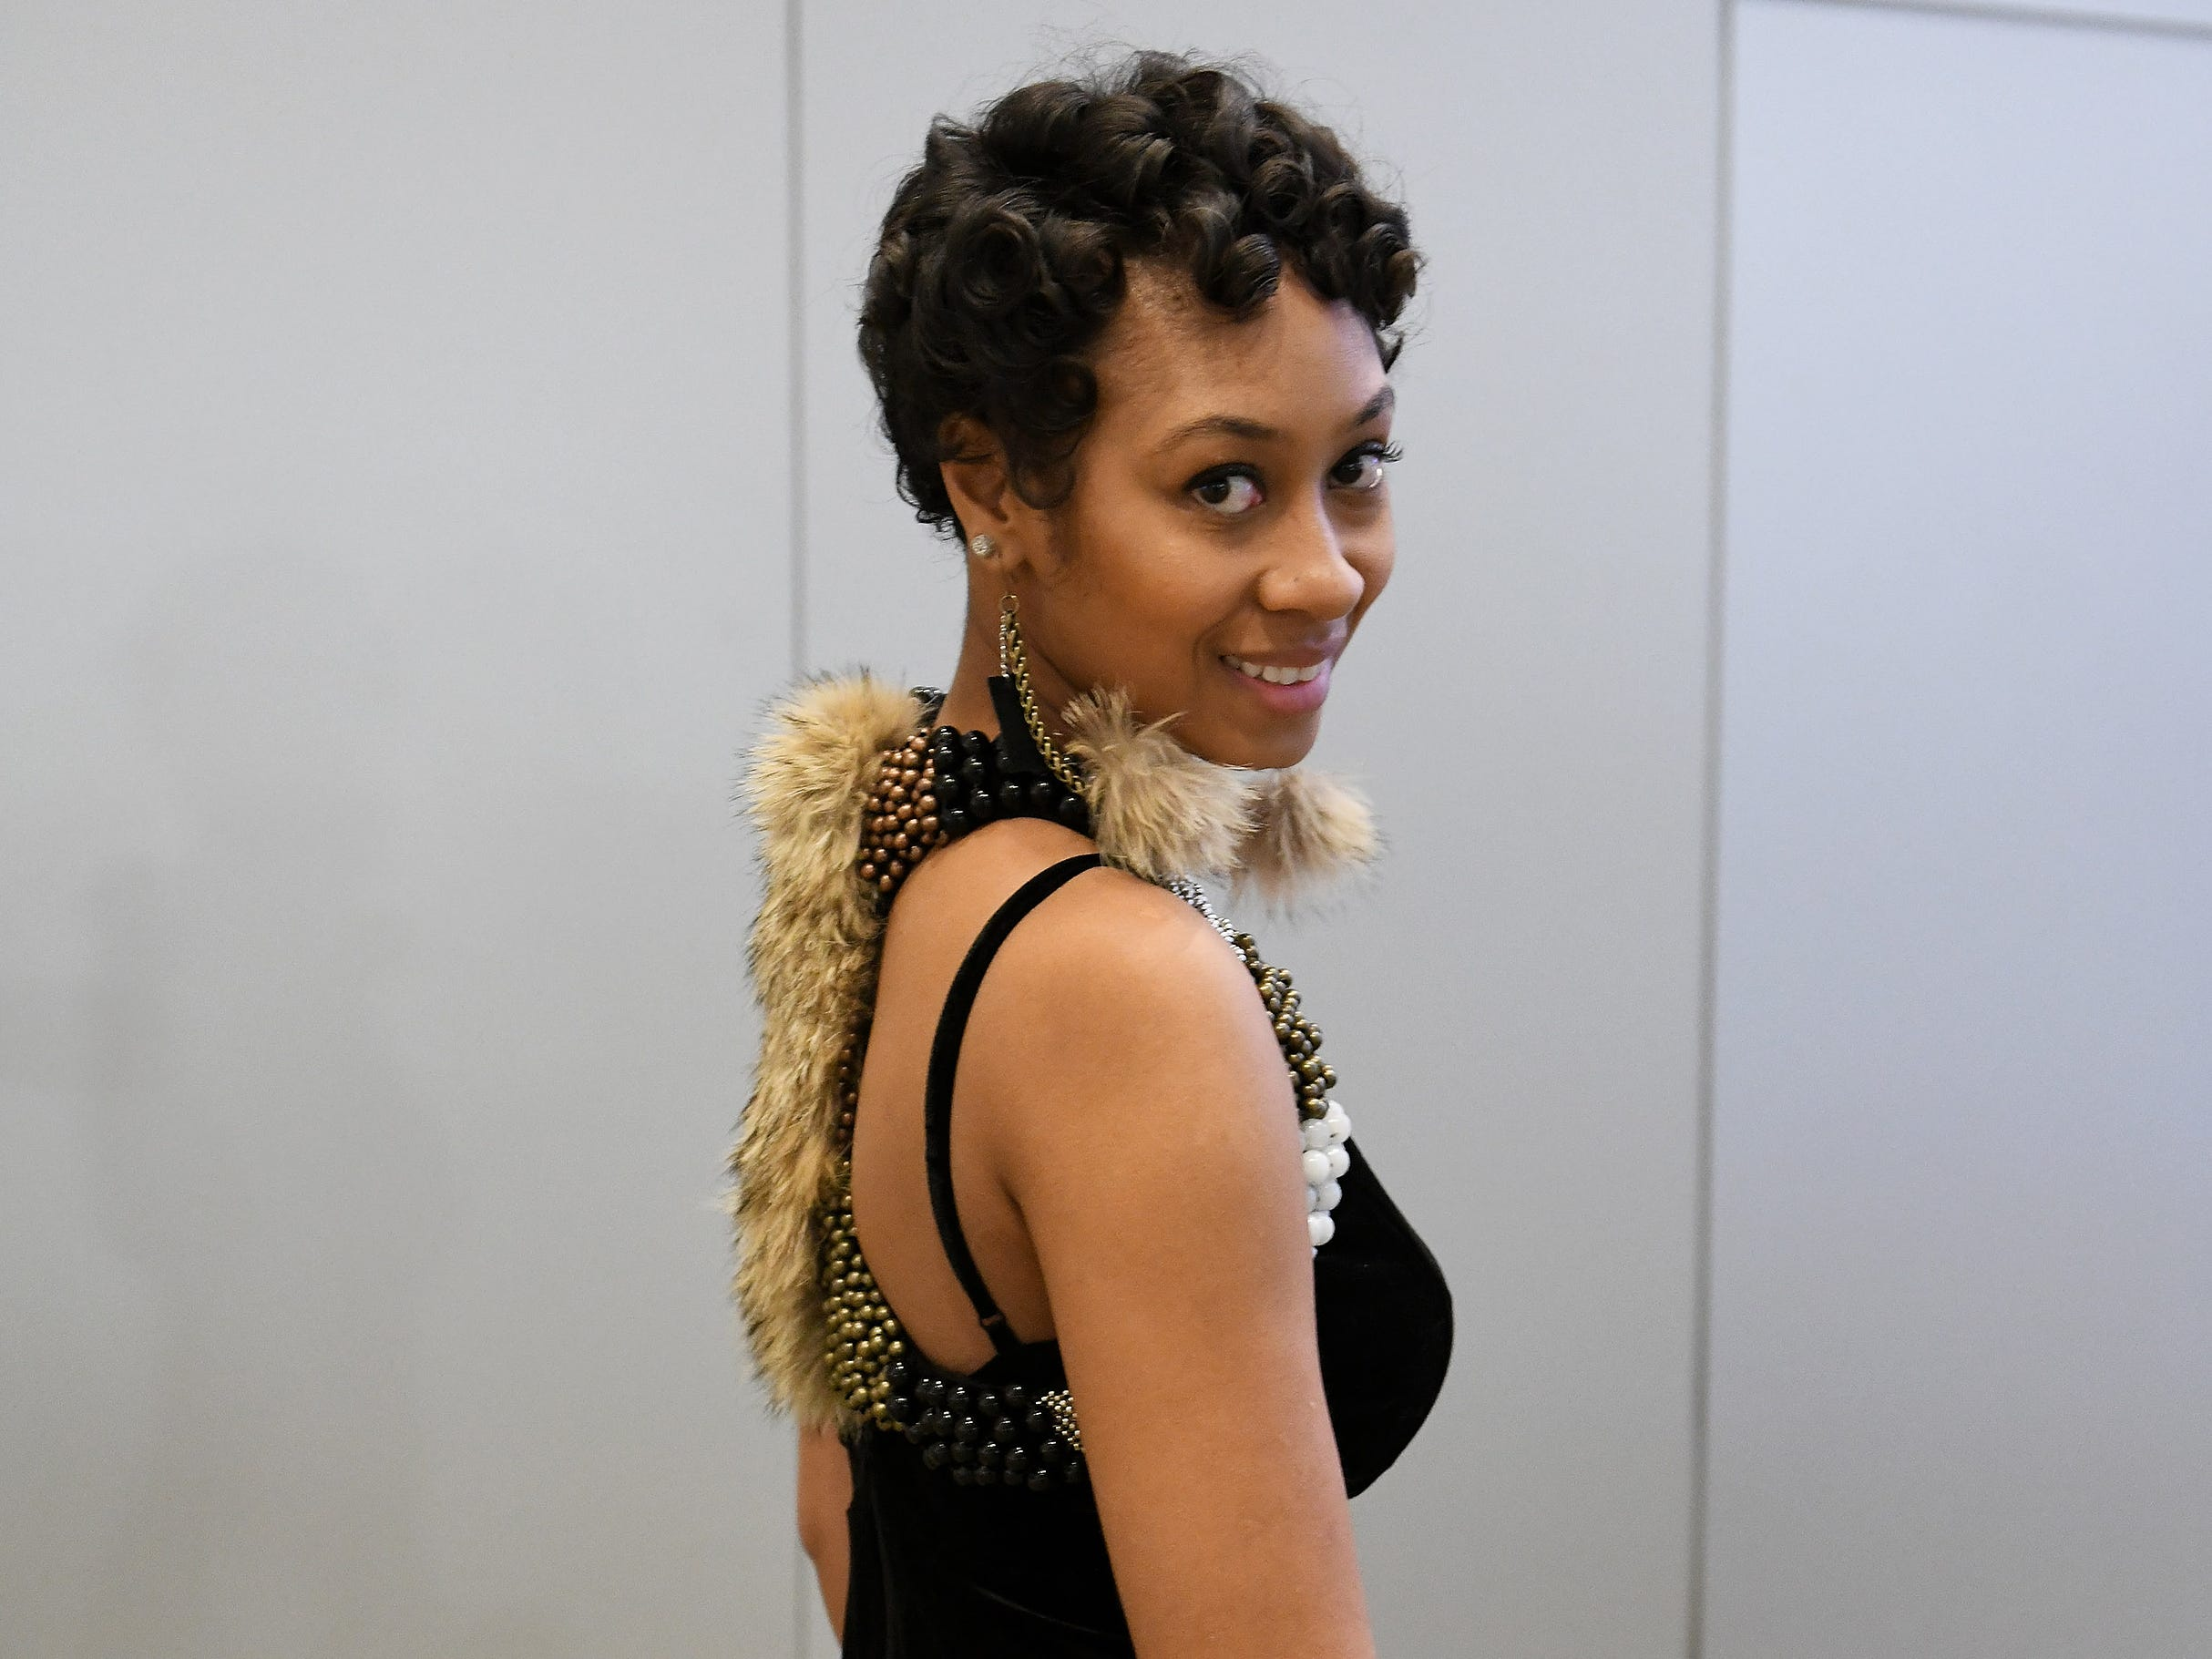 Melisa Taylor of Detroit made the dress decor from precious stones and fresh pearls and earrings herself. Her company is Nishati Ura.